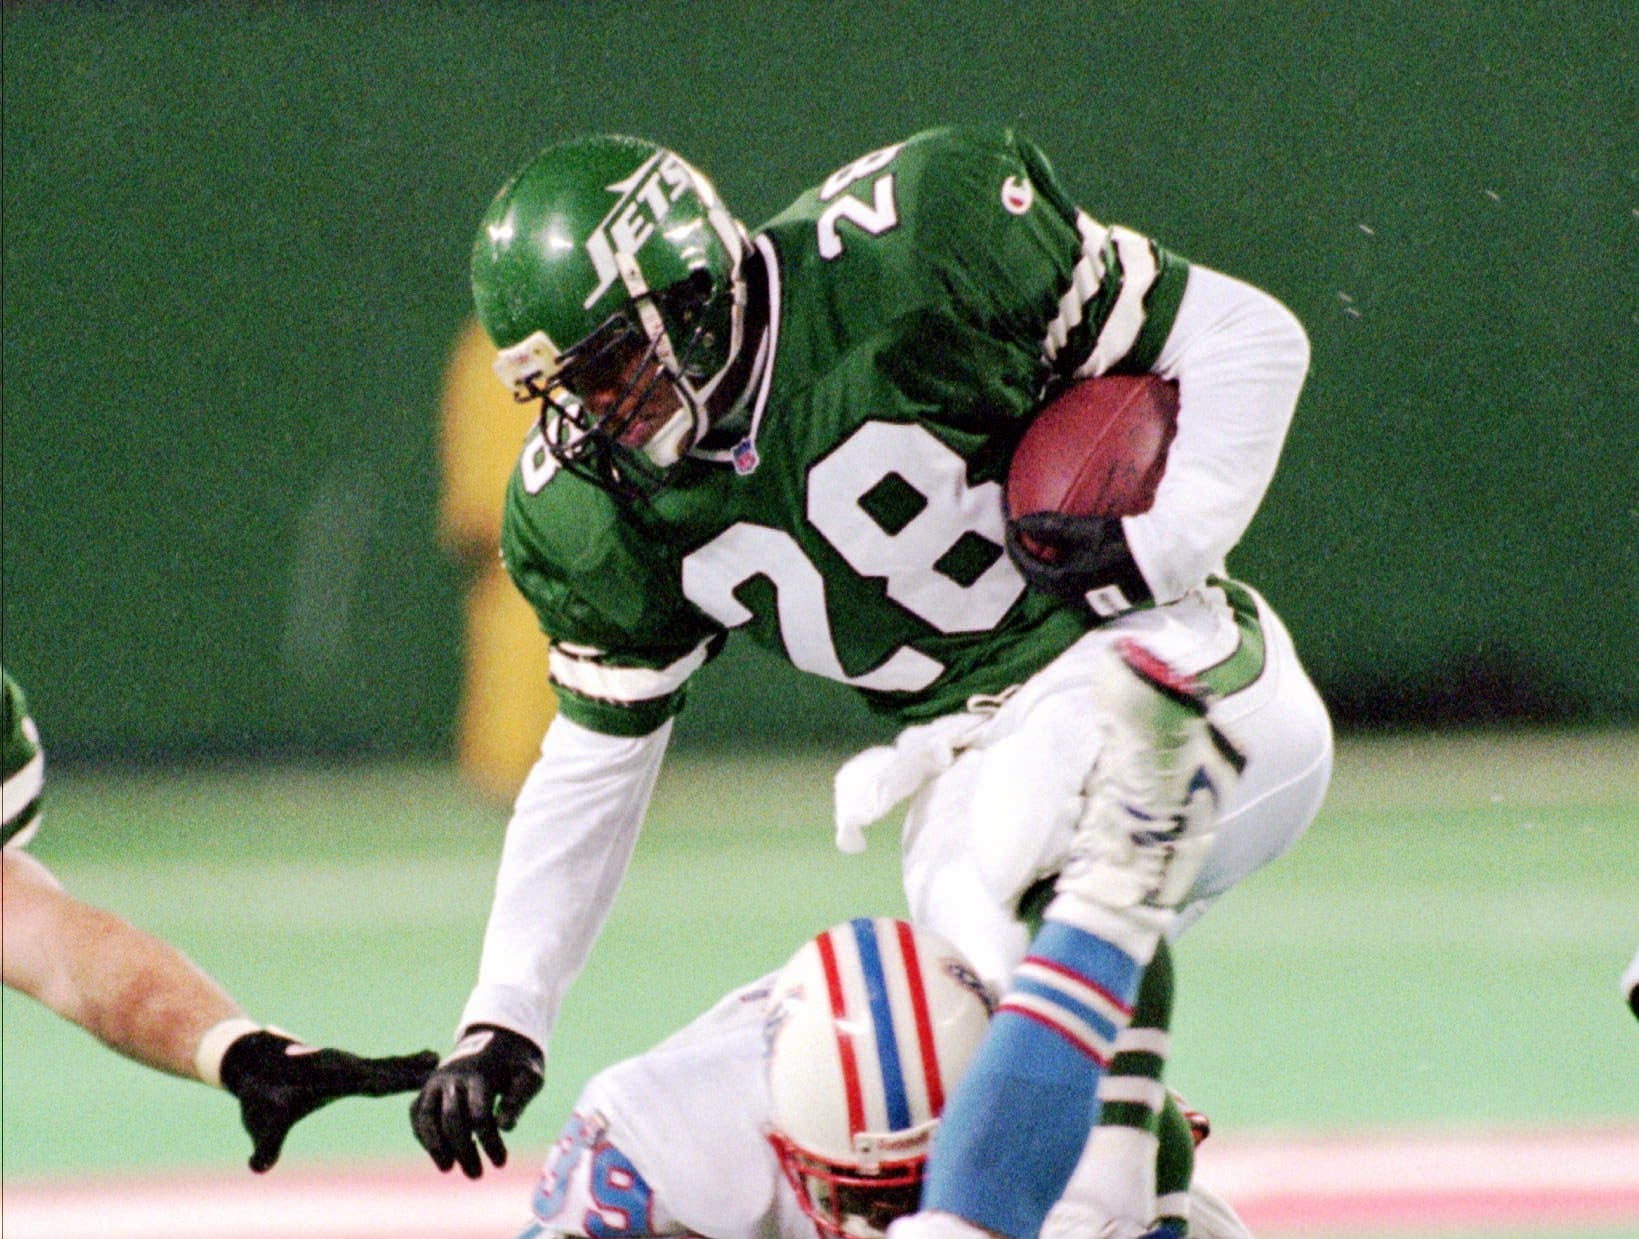 New York Jets kick returner Reggie Cobb (28) is tackled by Houston Oilers' Lee Cole (39) with help from teammate Rodney Thomas (20) after gaining 18 yards during the fourth quarter Sunday, Dec. 1, 1996, at Giants Stadium in East Rutherford, N.J. The Oilers beat the Jets 35-10.